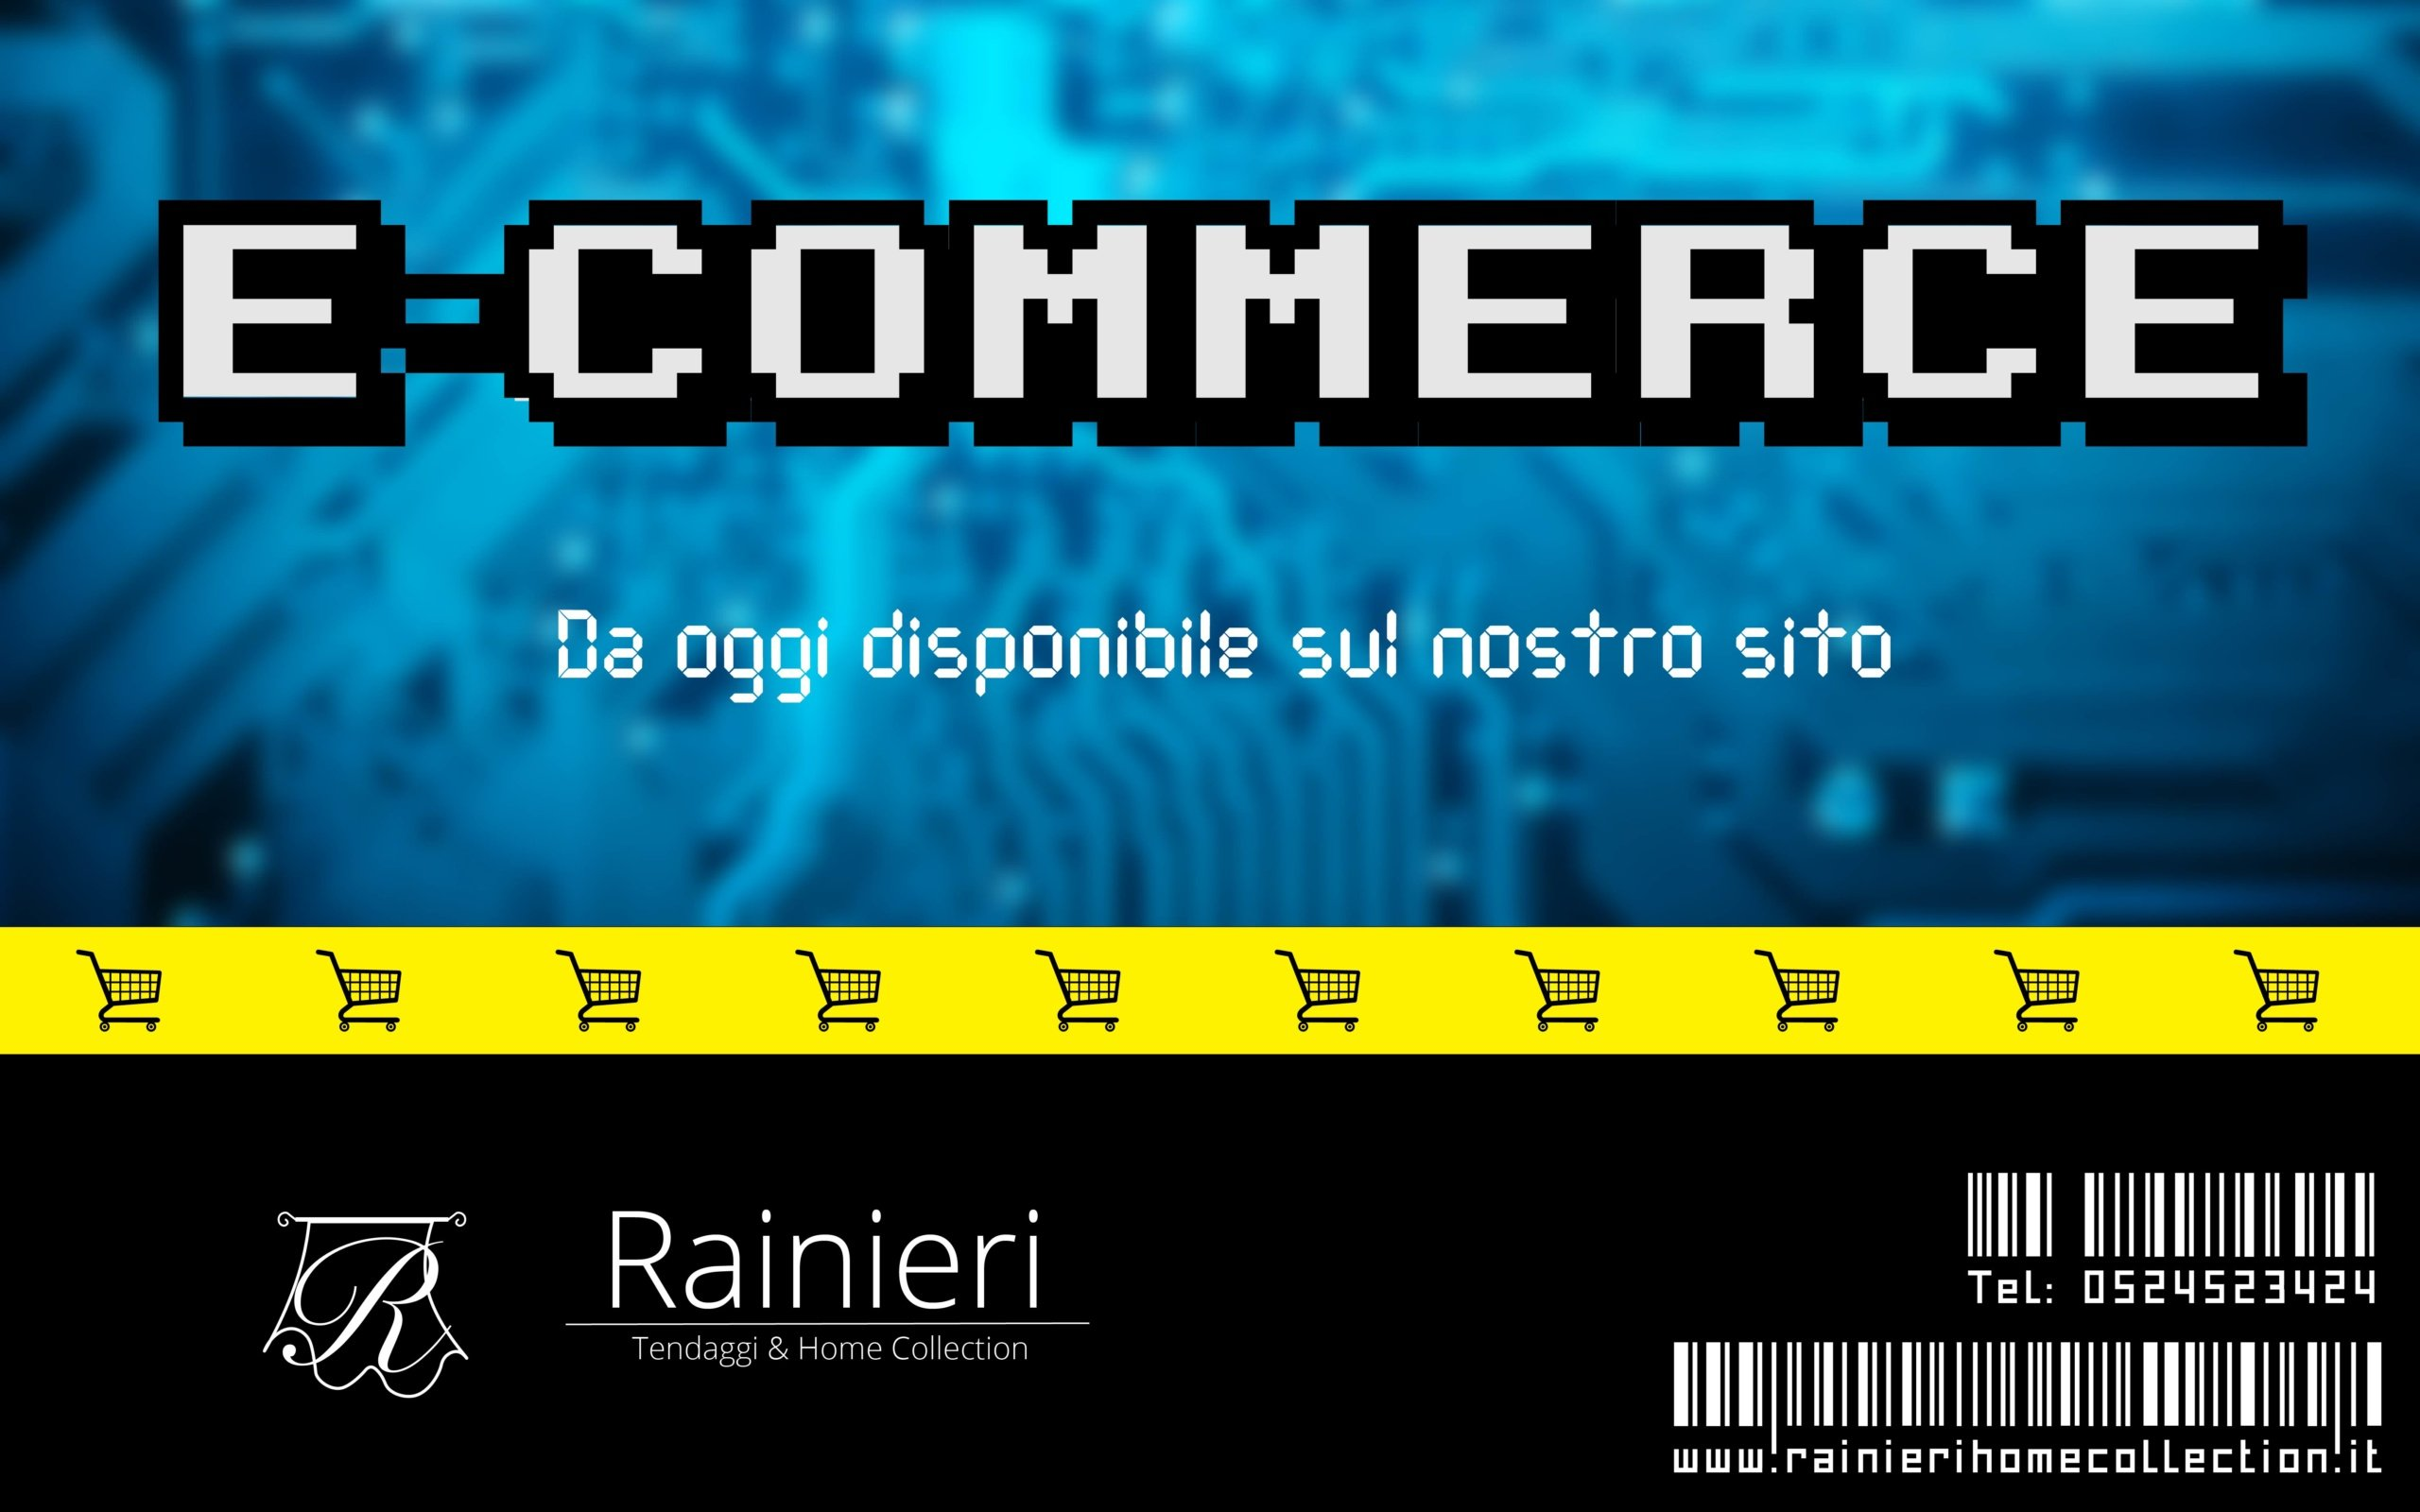 E-commerce ora disponibile